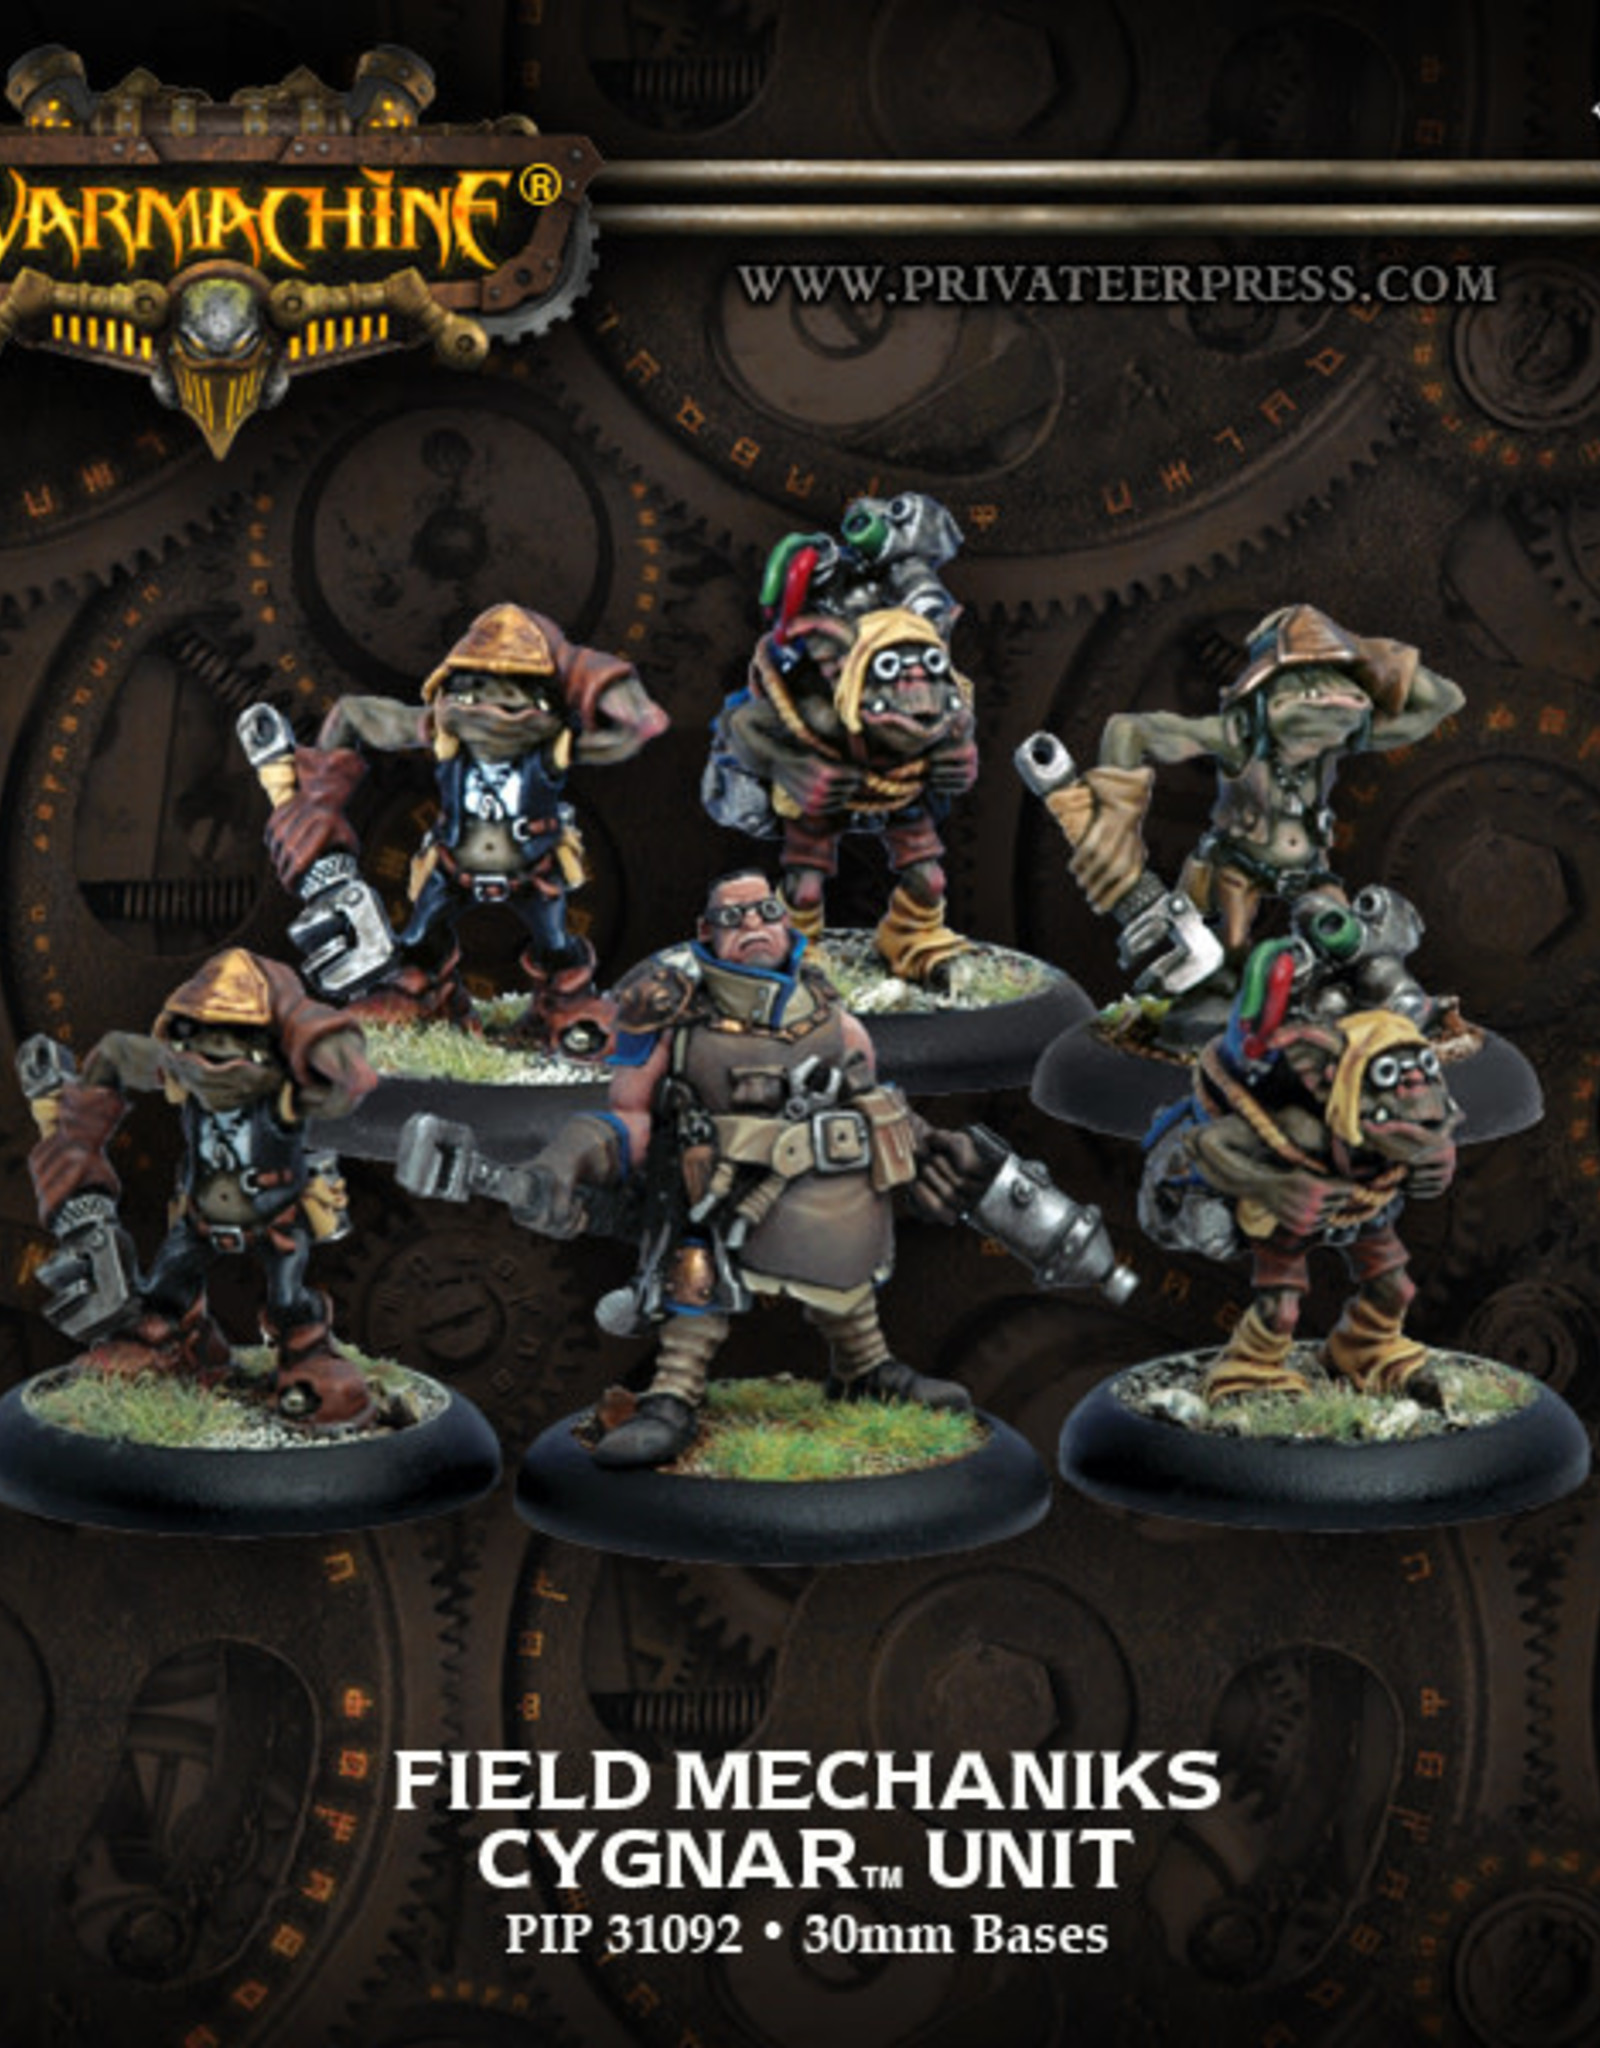 Warmachine Cygnar - Field Mechaniks